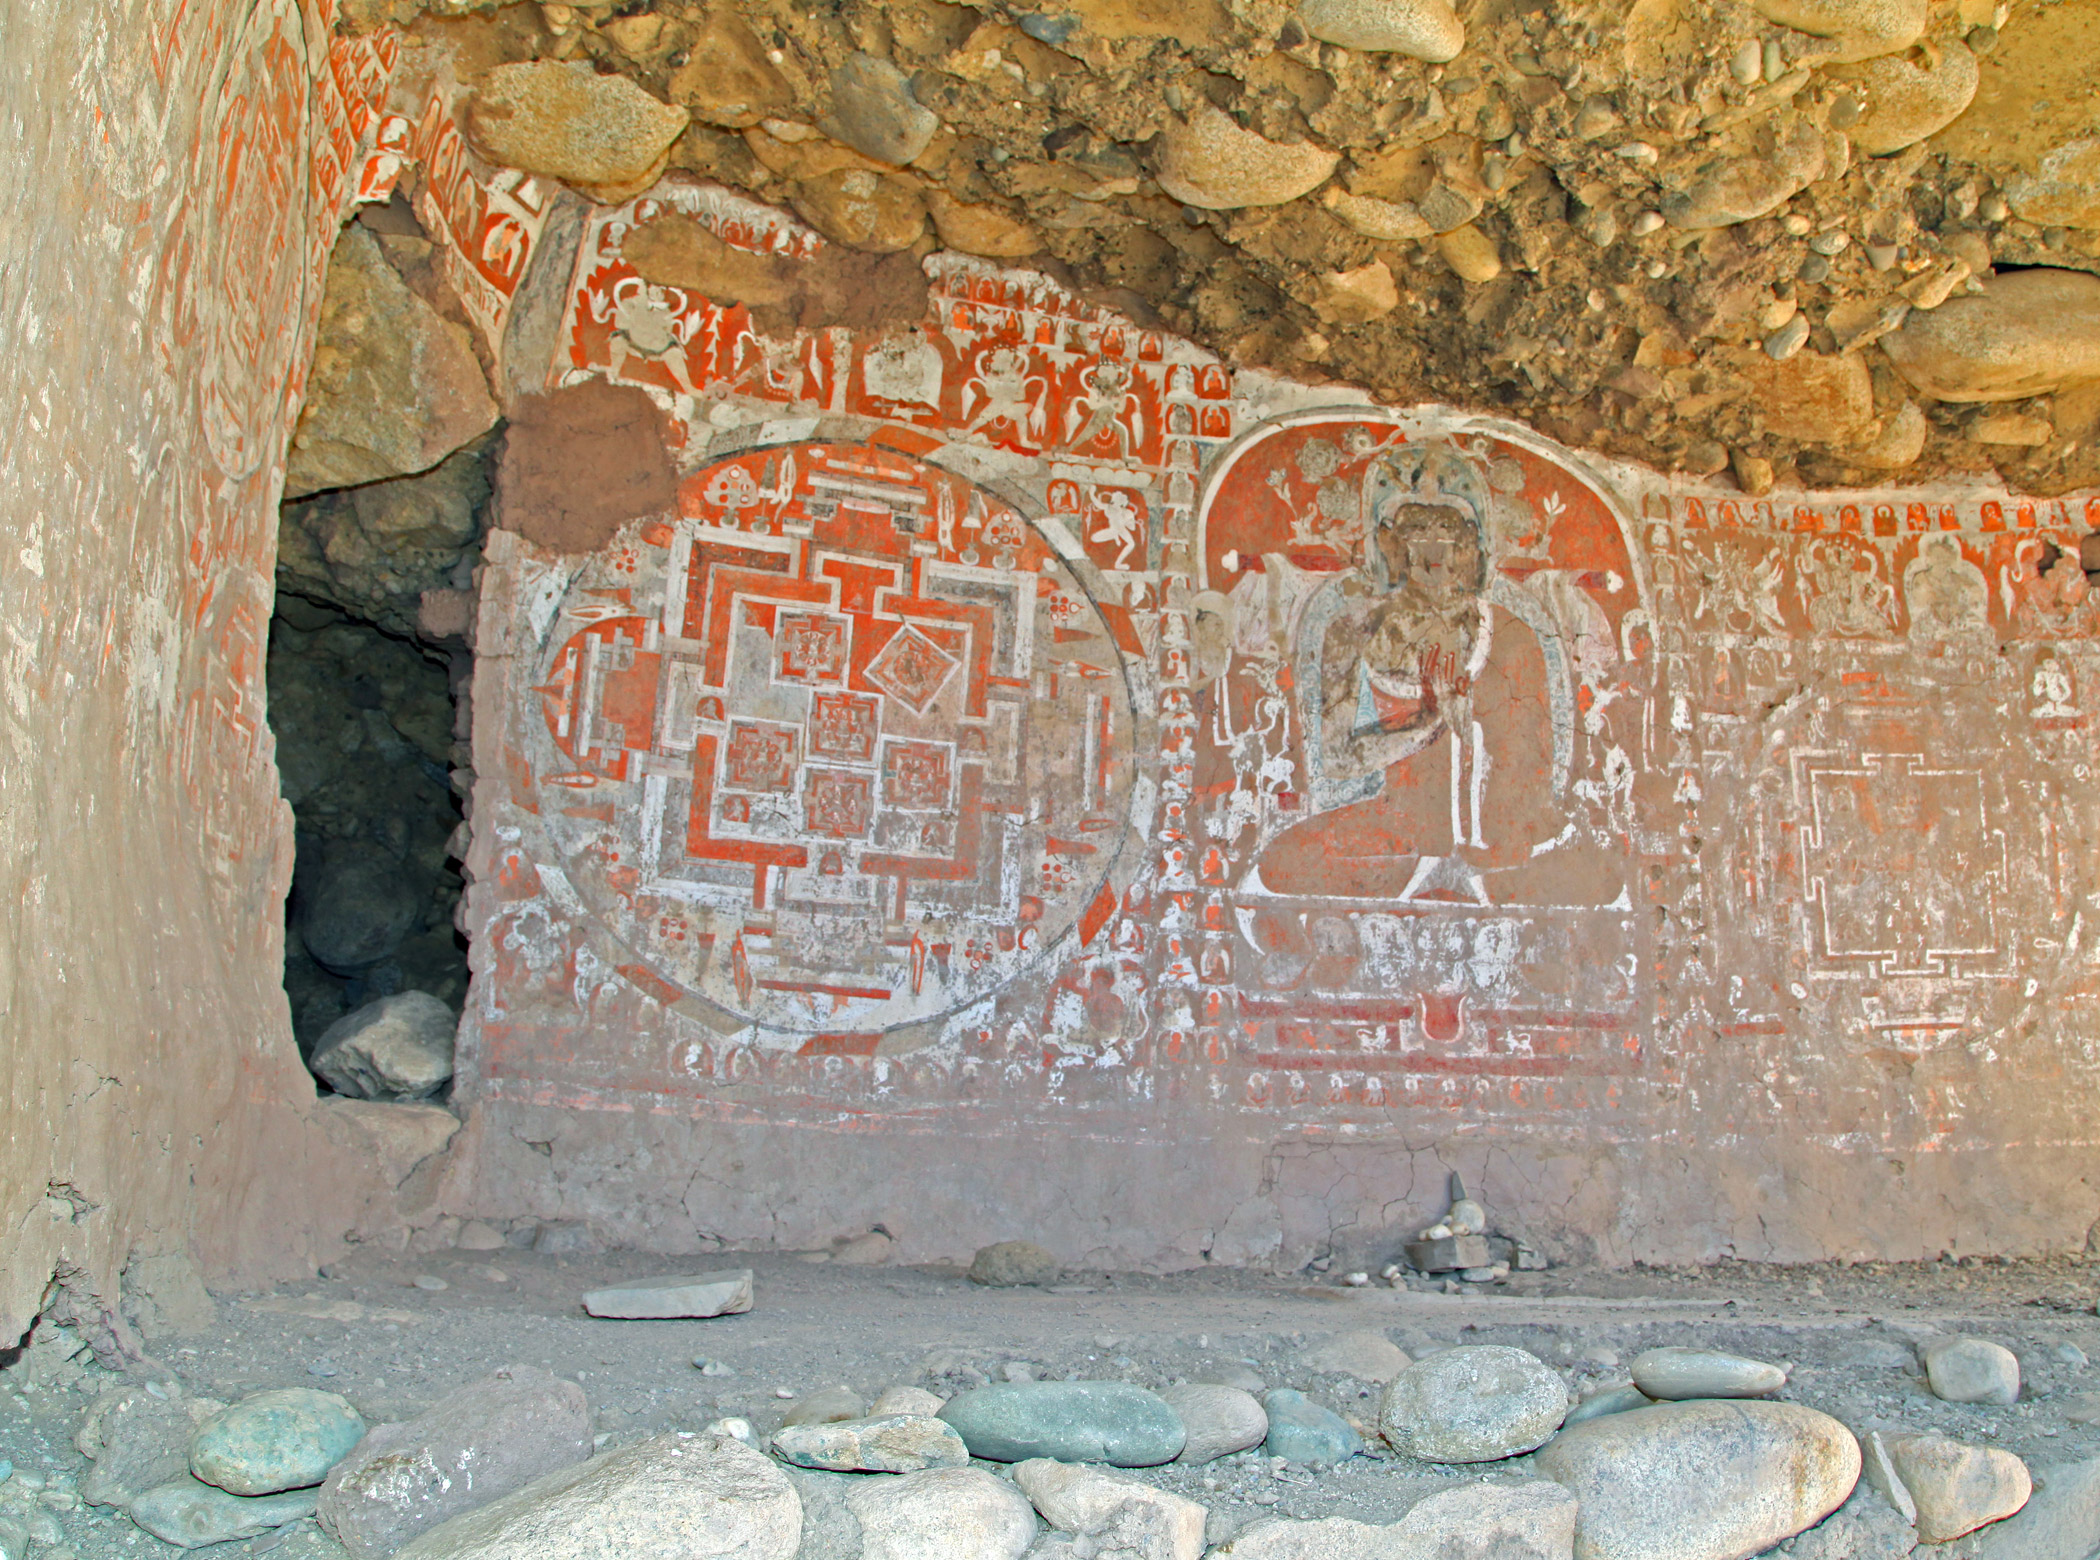 India, Gon-Nila-Phuk                               Cave Temples and Fort: The caves contain Buddhist wall paintings of exquisite artistic and spiritual significance, but they are endangered by the menacing disintegration of the surrounding rock.